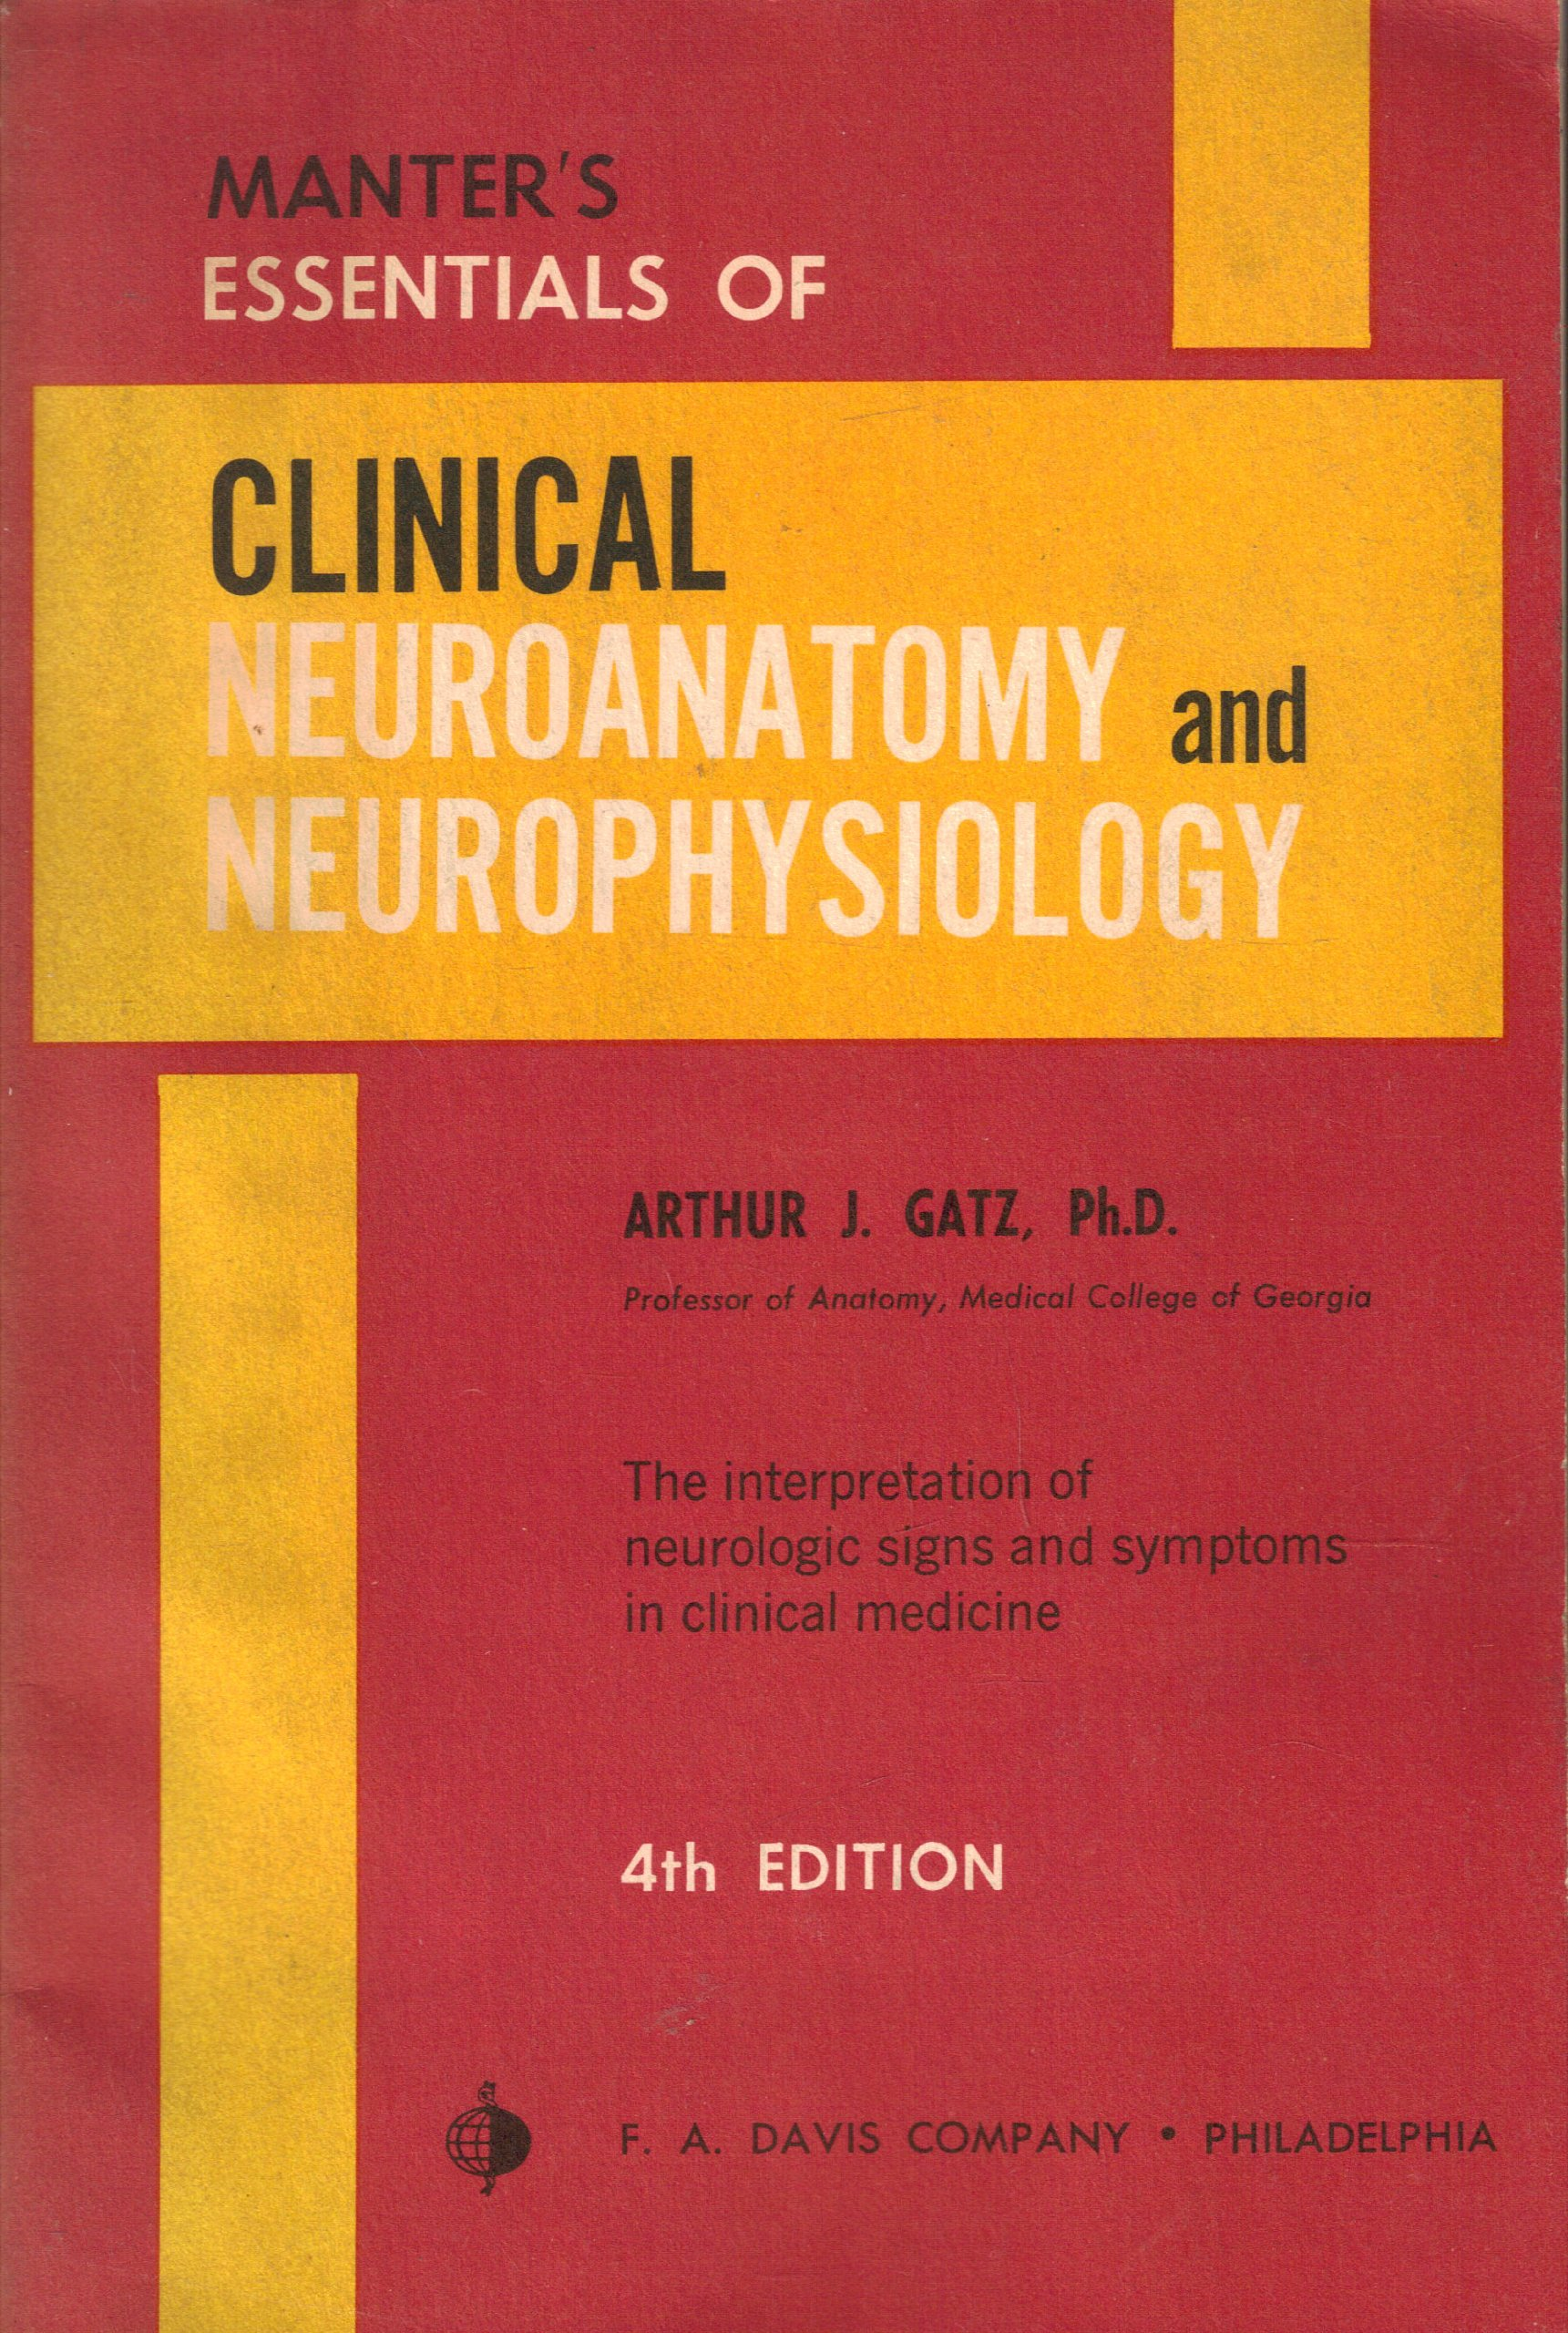 Manters Essentials Of Clinical Neuroanatomy And Neurophysiology